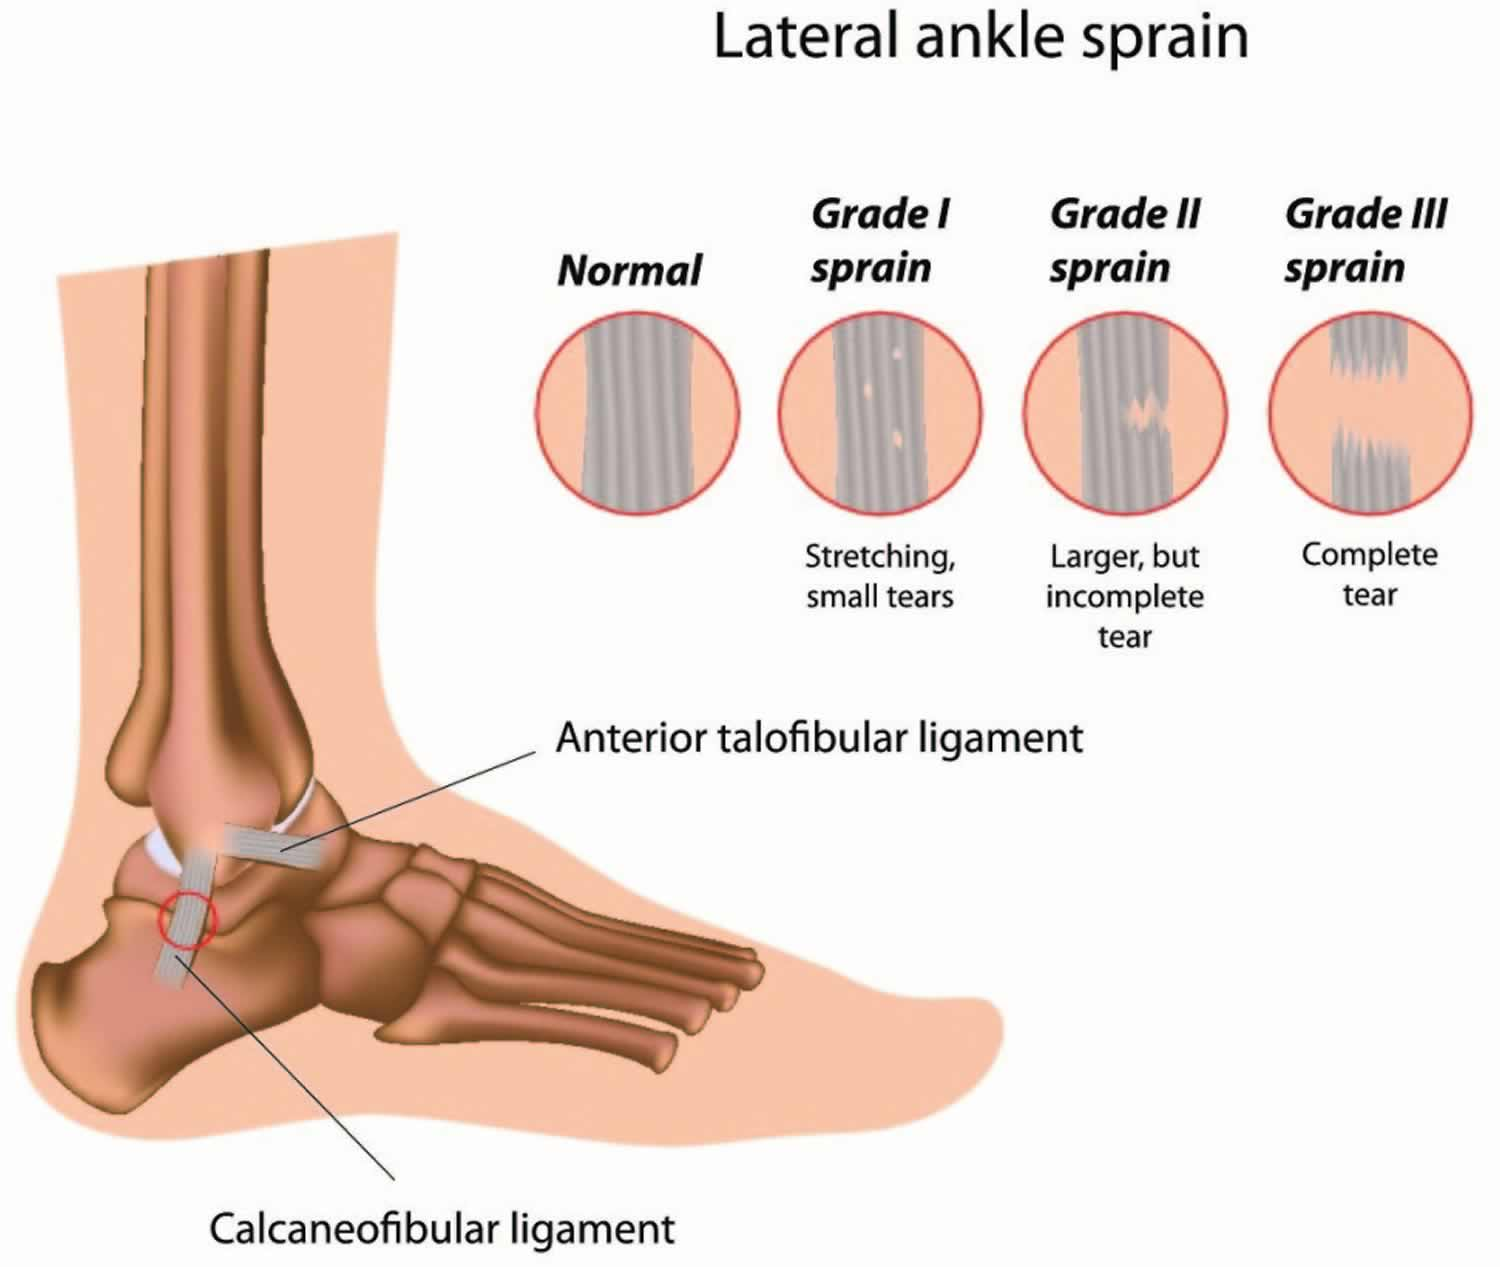 Sprained ankle grades